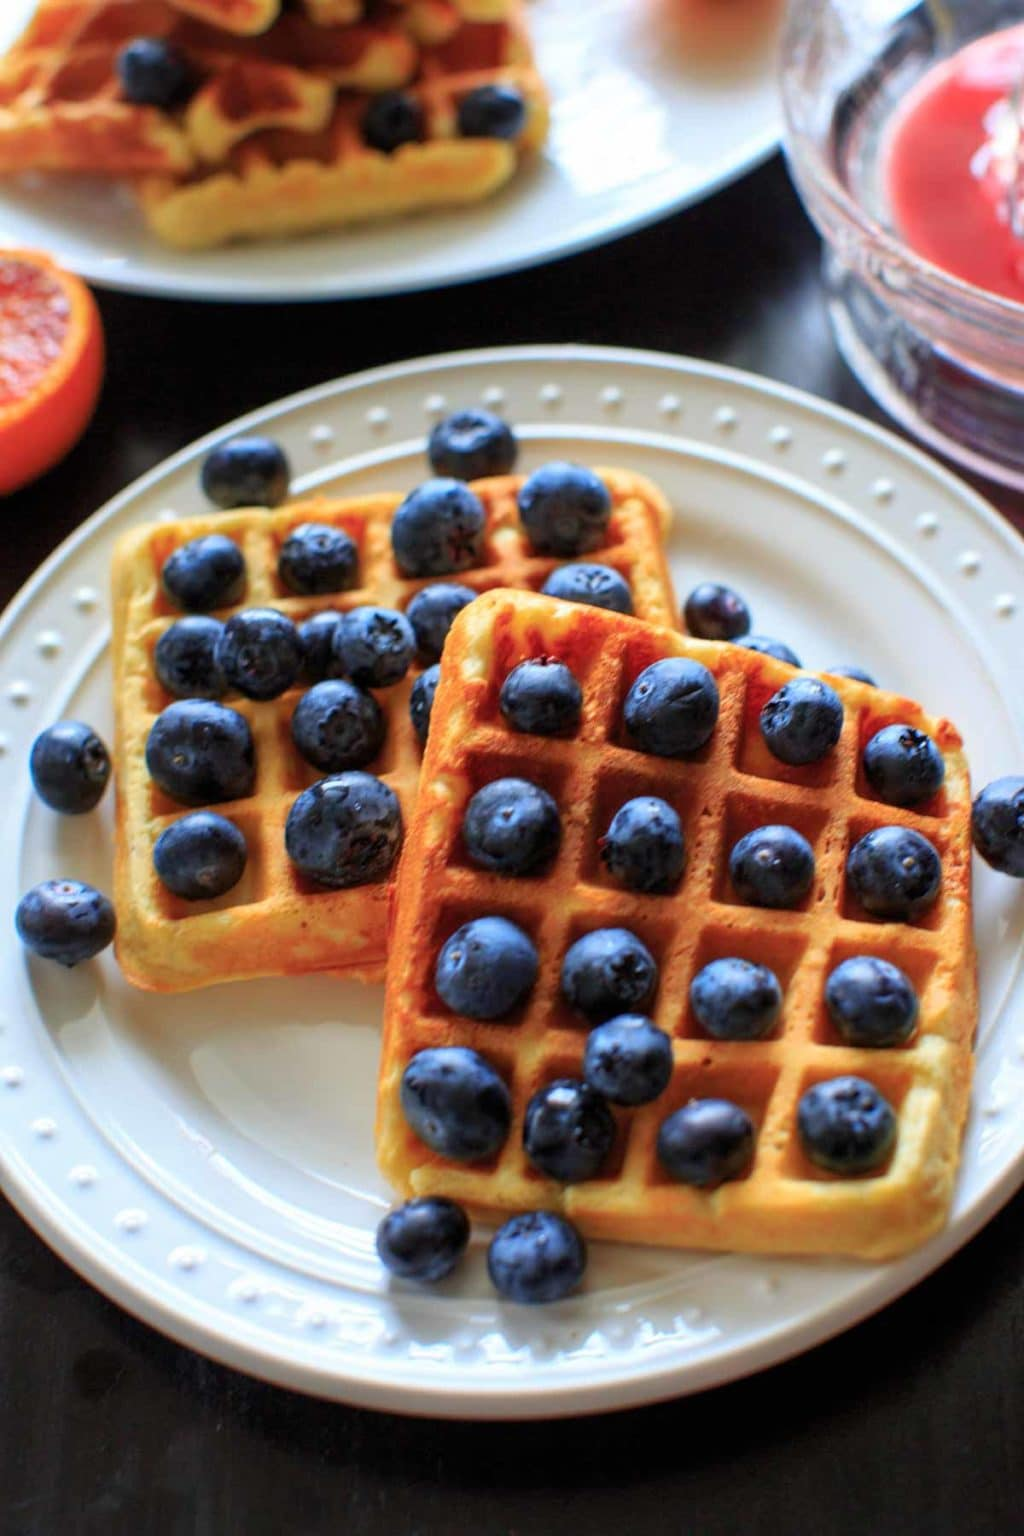 Belgian Waffles made healthy with split red lentils, blood orange juice and blueberries. Breakfast doesn't get any better than this!